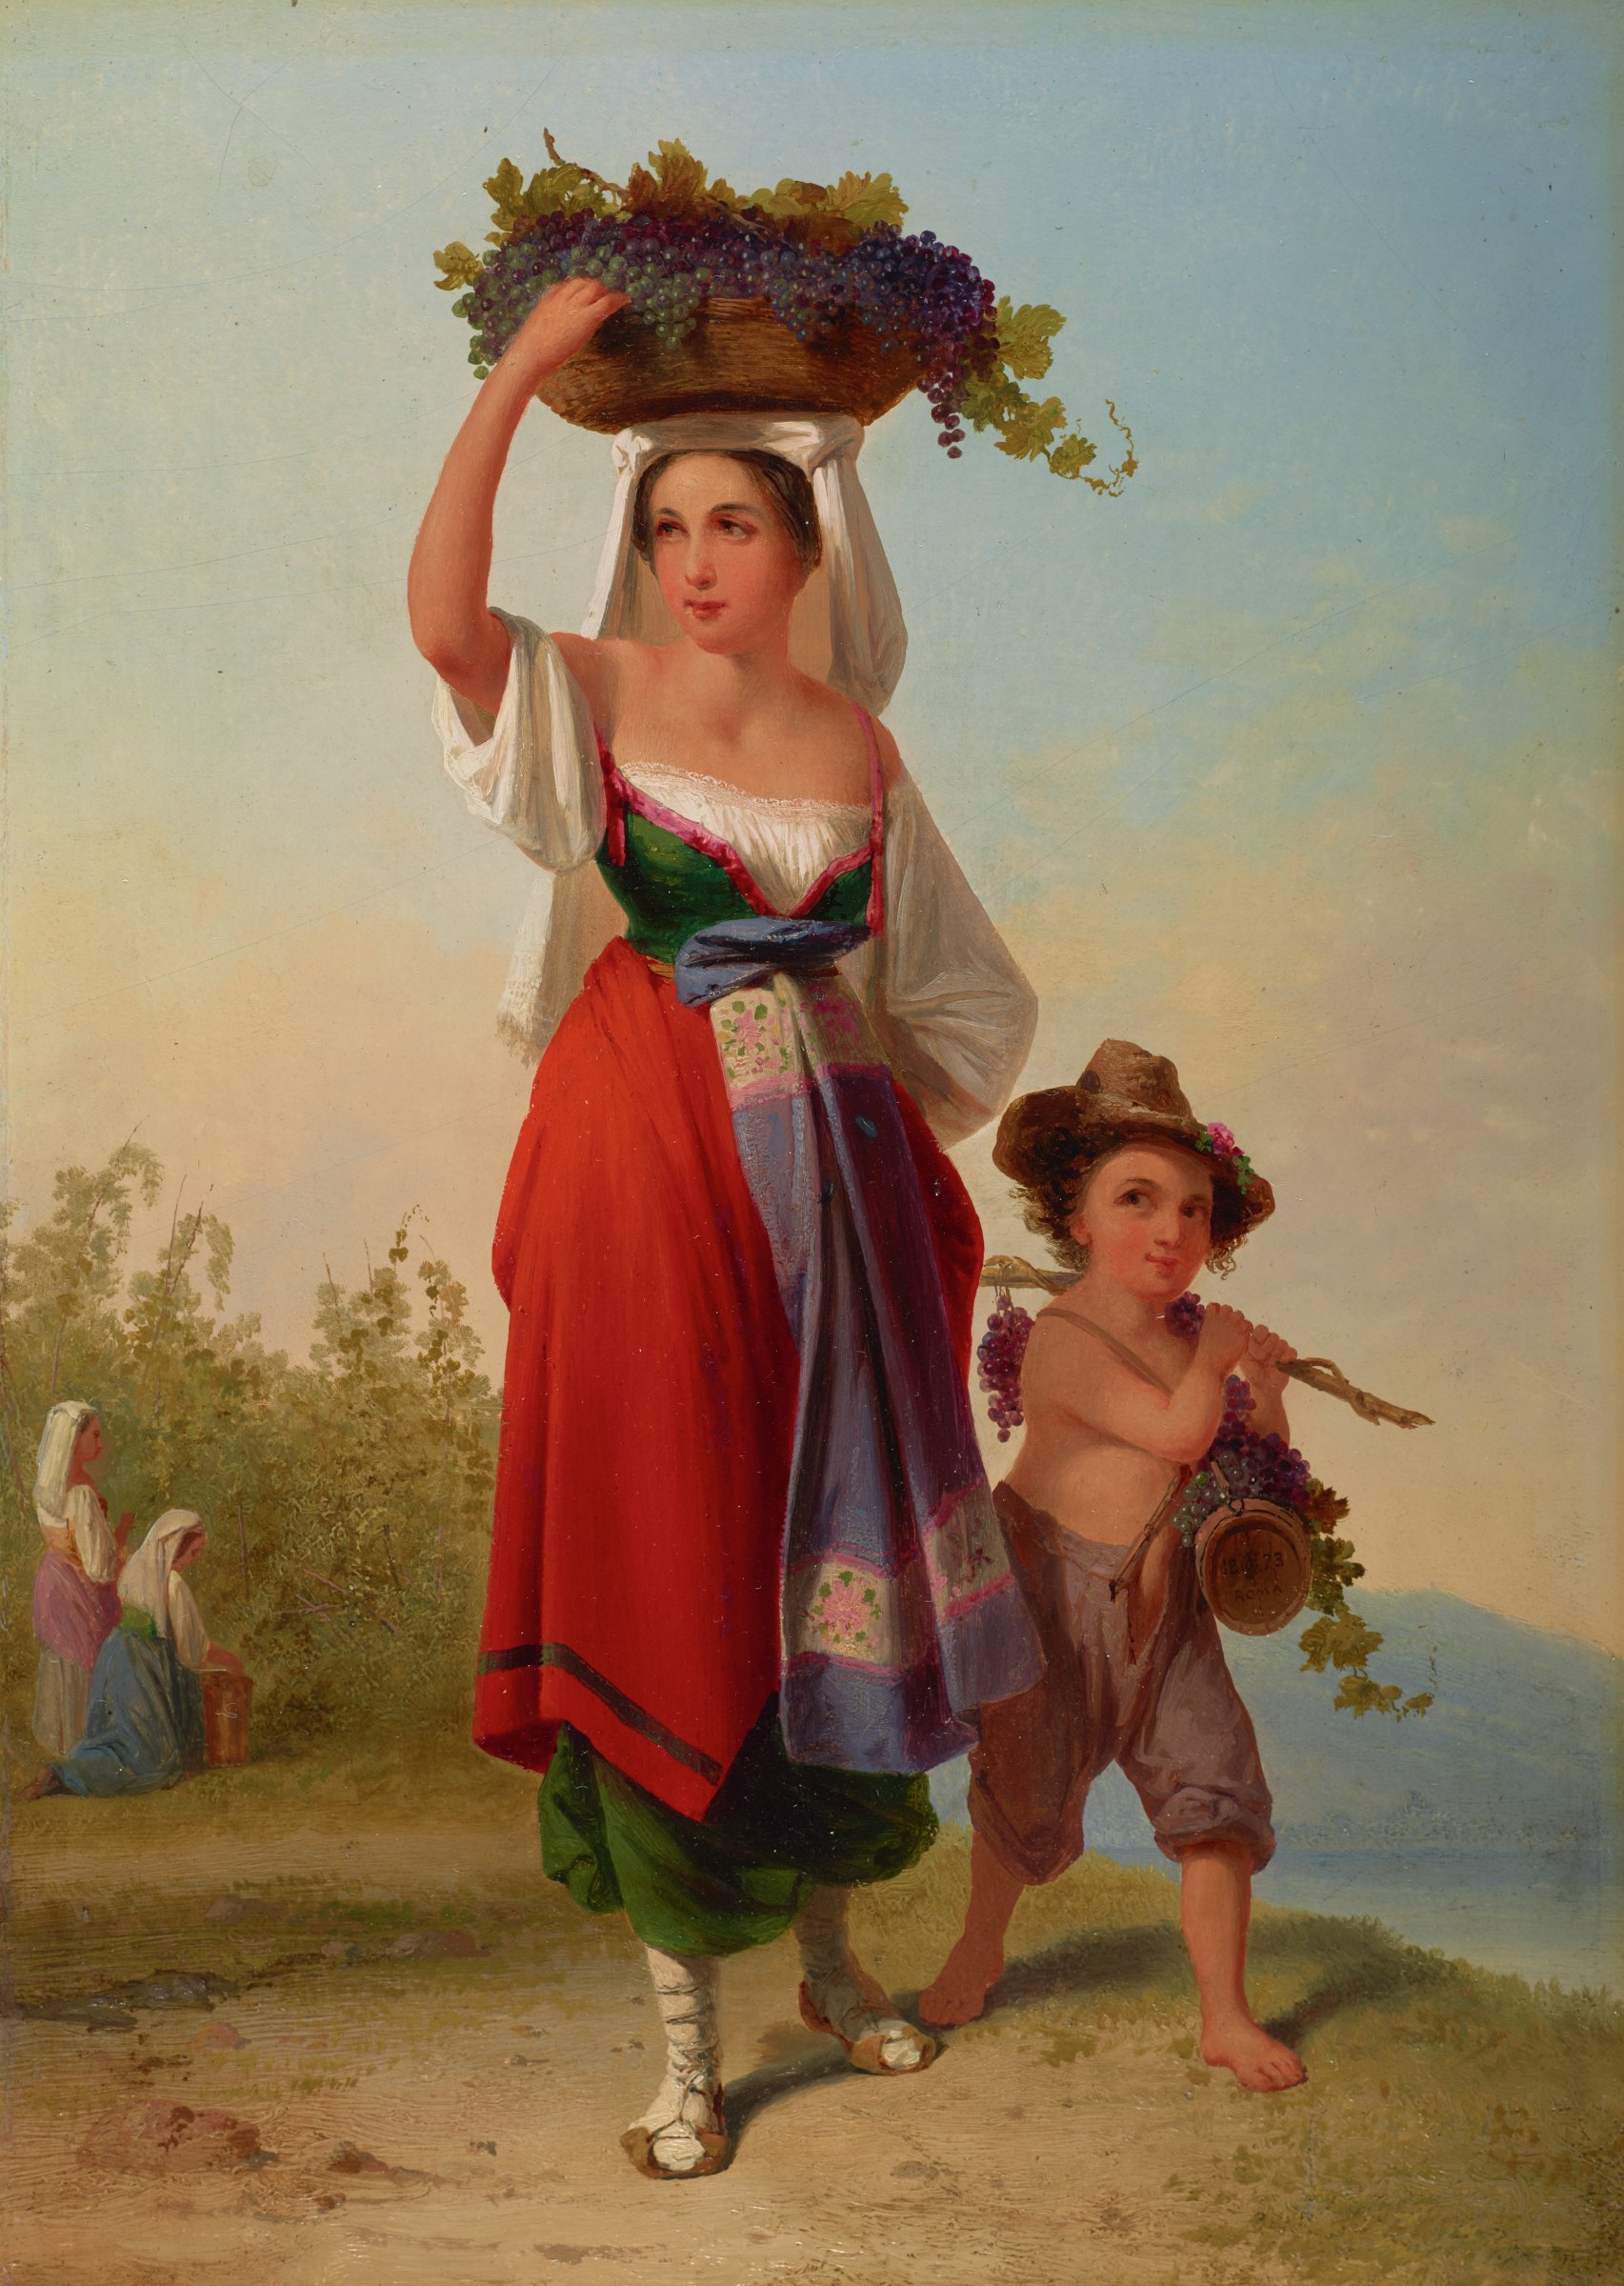 """At left, a woman in traditional """"ciociara"""" peasant costume, carries a basket of grapes atop her head. A boy, at right, perhaps the young son of the woman, holds a small cask under his proper left arm. Over his proper left shoulder, the boy carries a branch laden with grapes, steadied with his proper right hand. In the background at left, two women can be seen harvesting grapes."""